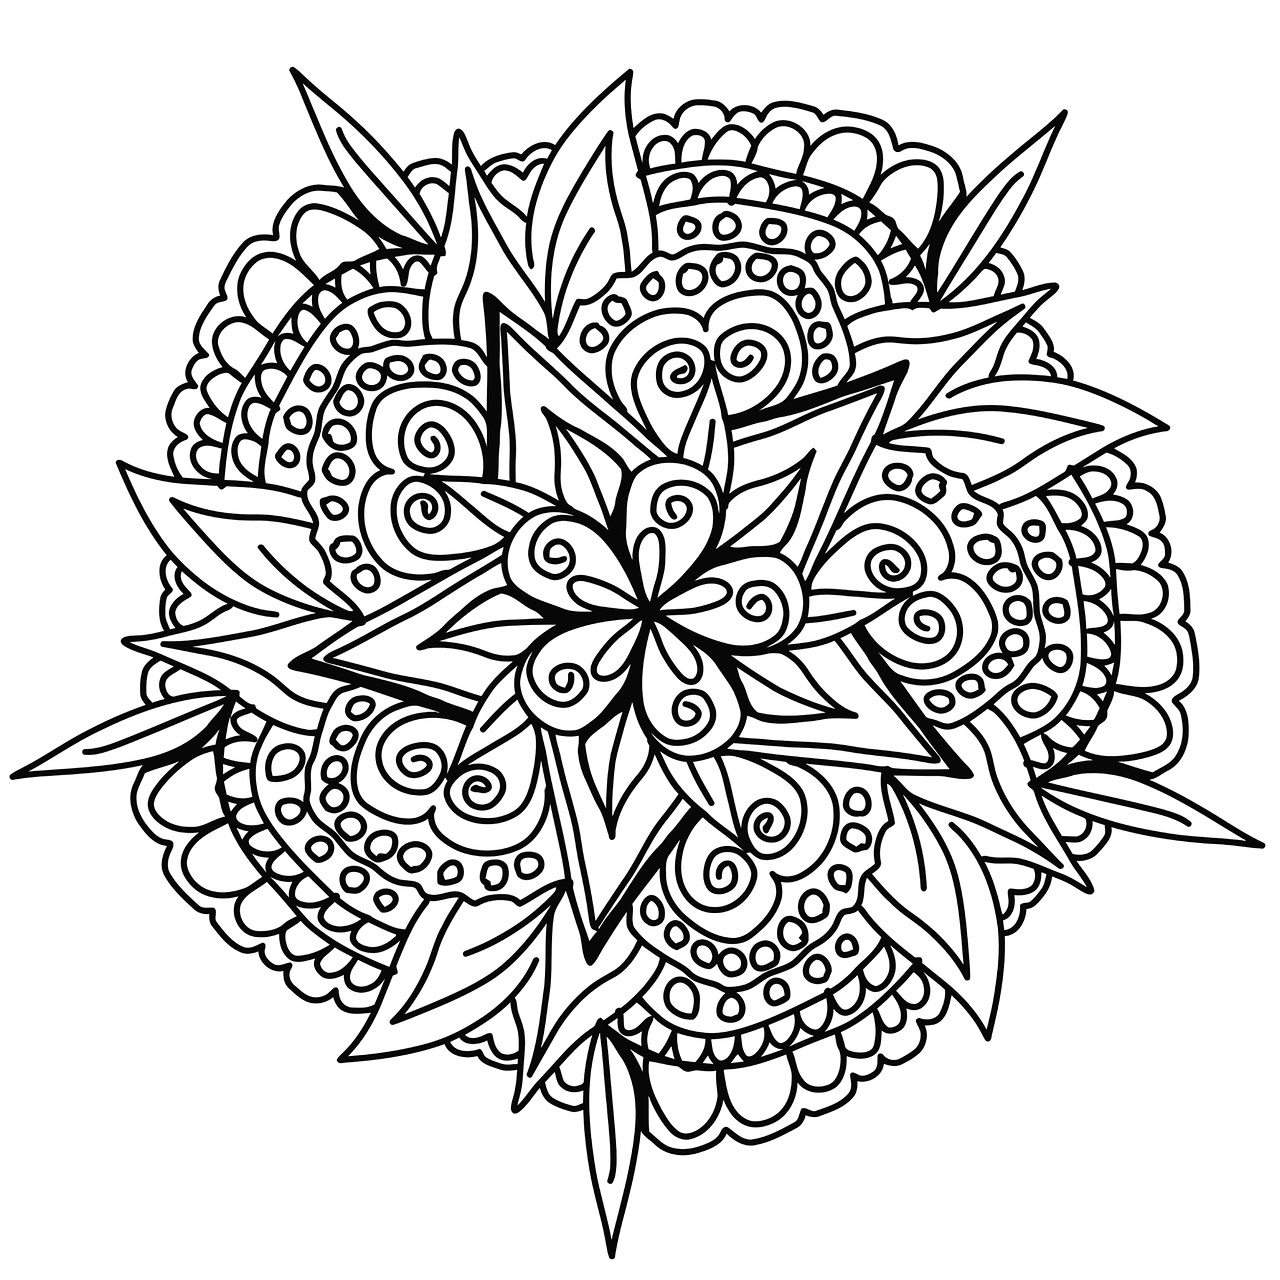 Vegetal hand drawn Mandala, full of creativity and artistic sense ... Color these beautiful petals and leaves with the colors you like the most.